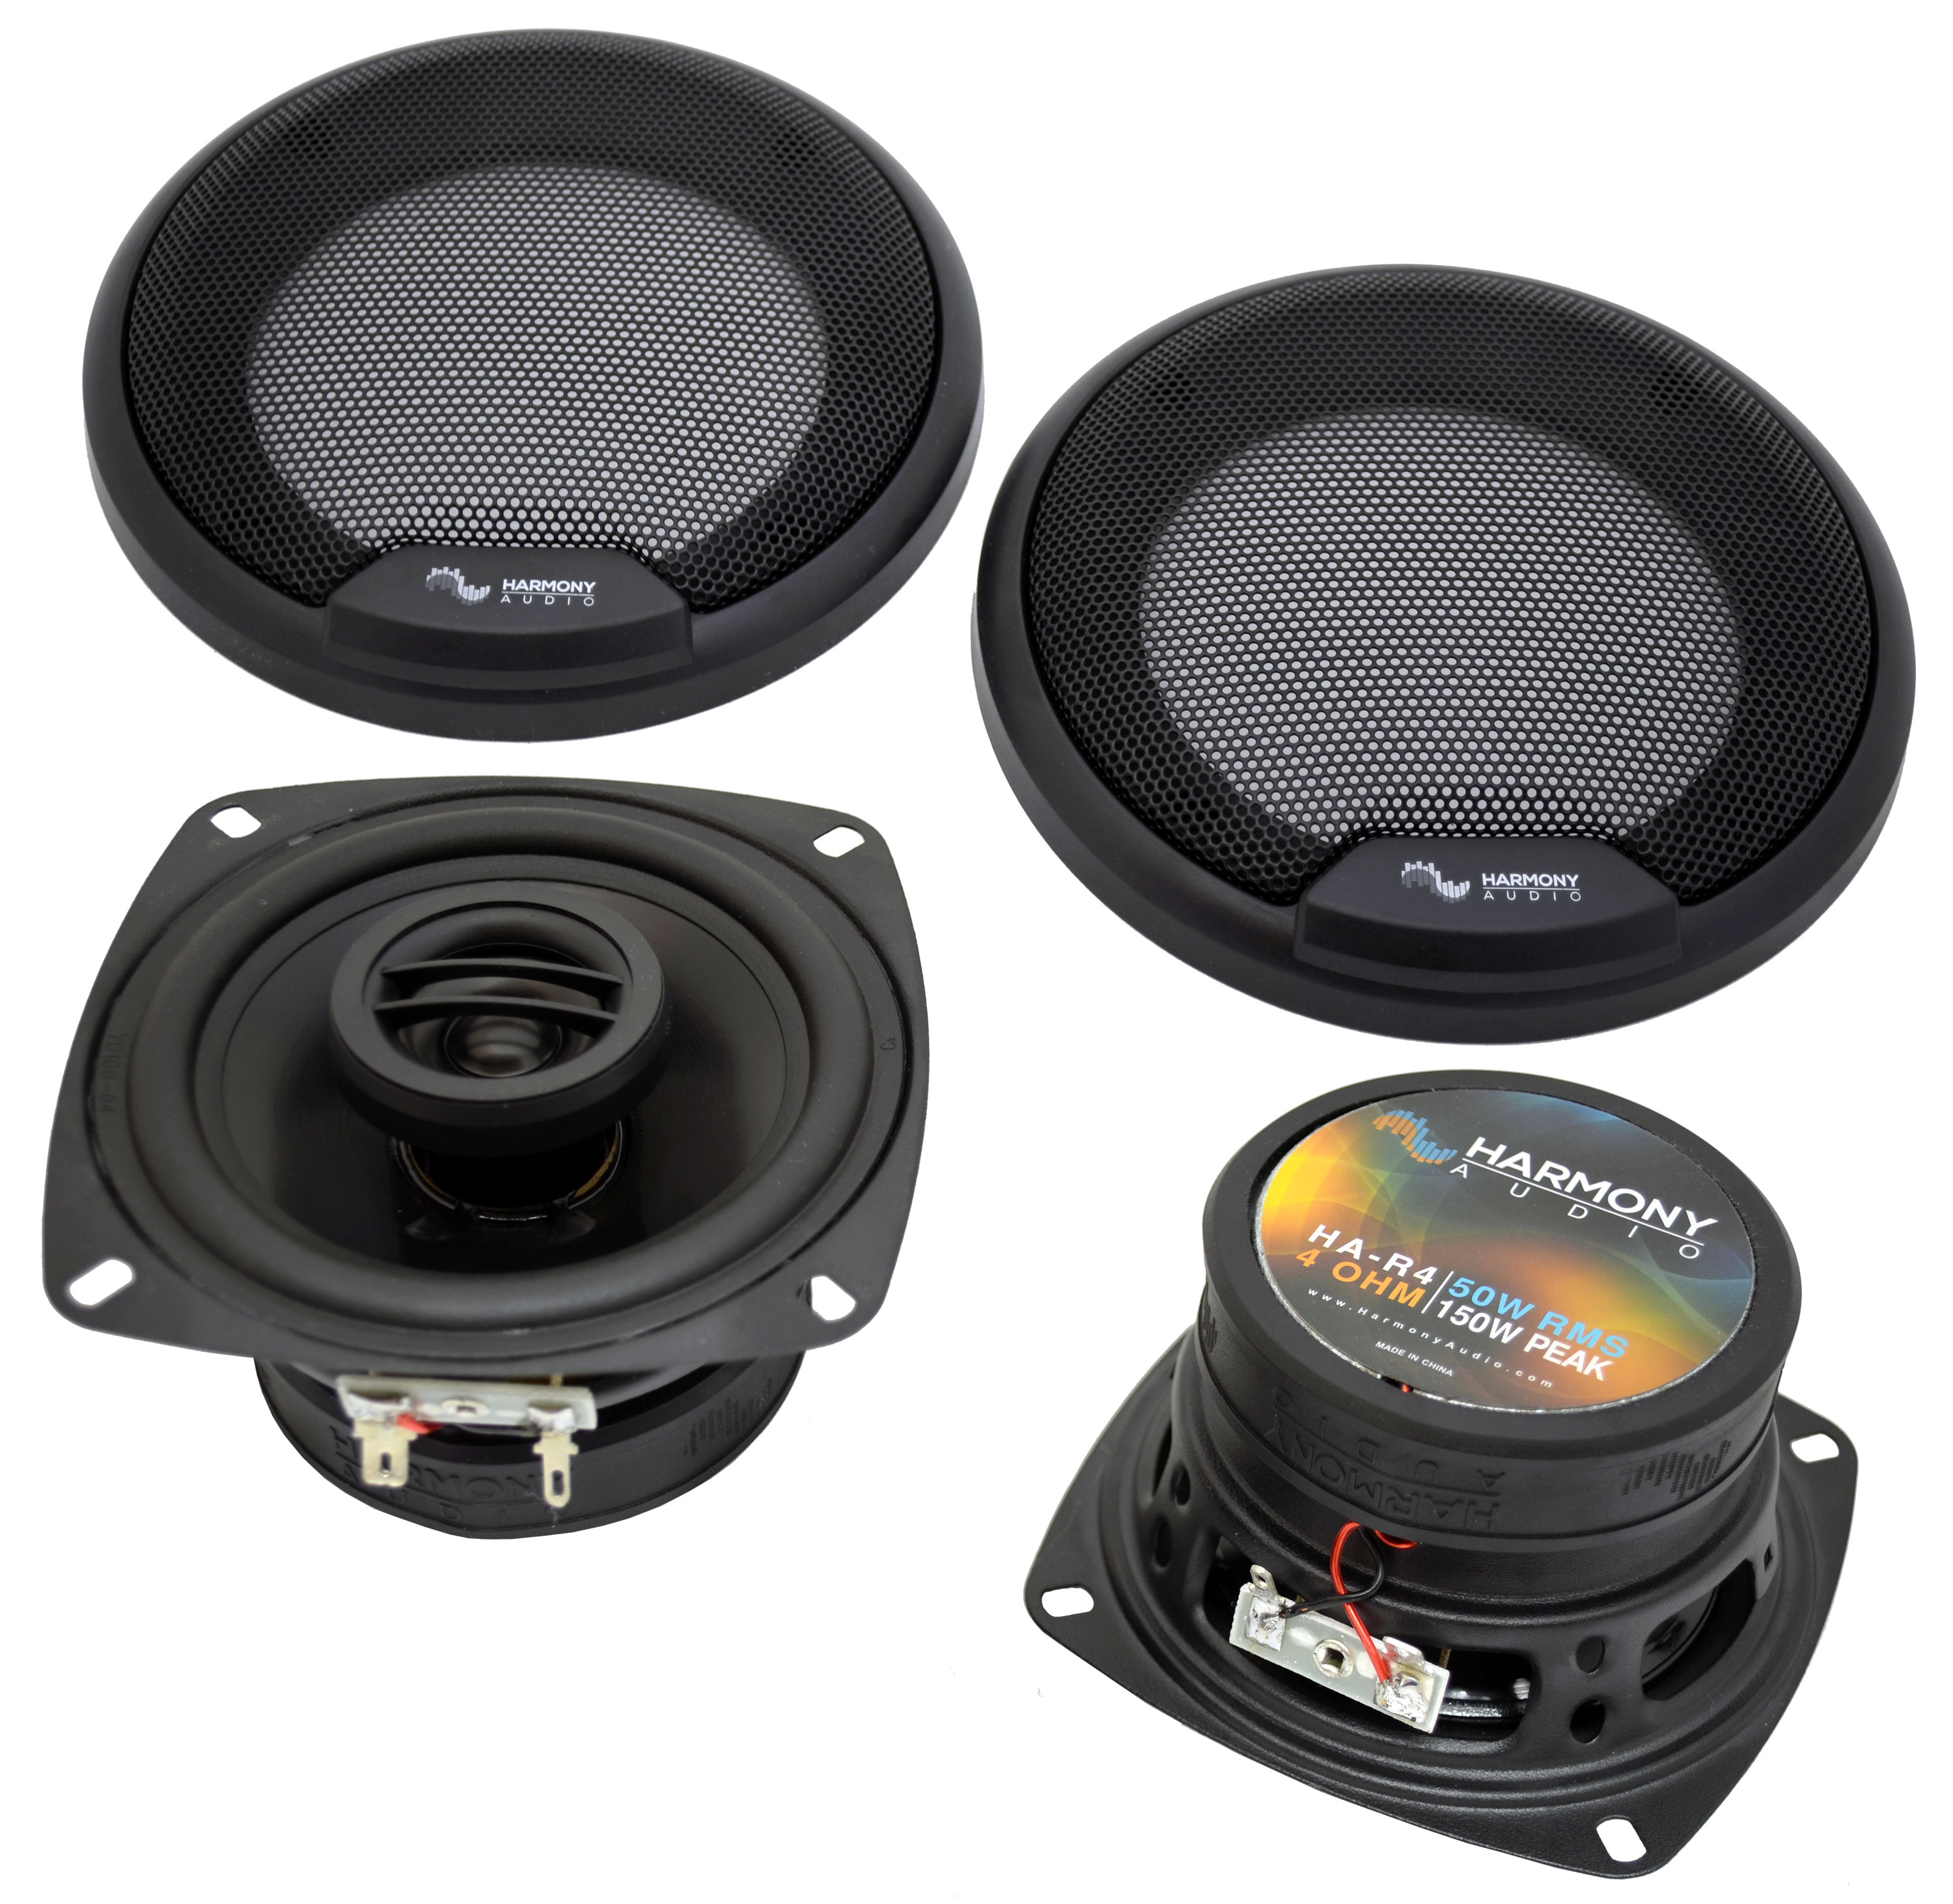 Fits Chevy SSR 2003-2006 Rear Replacement Speaker Harmony HA-R4 Speakers New